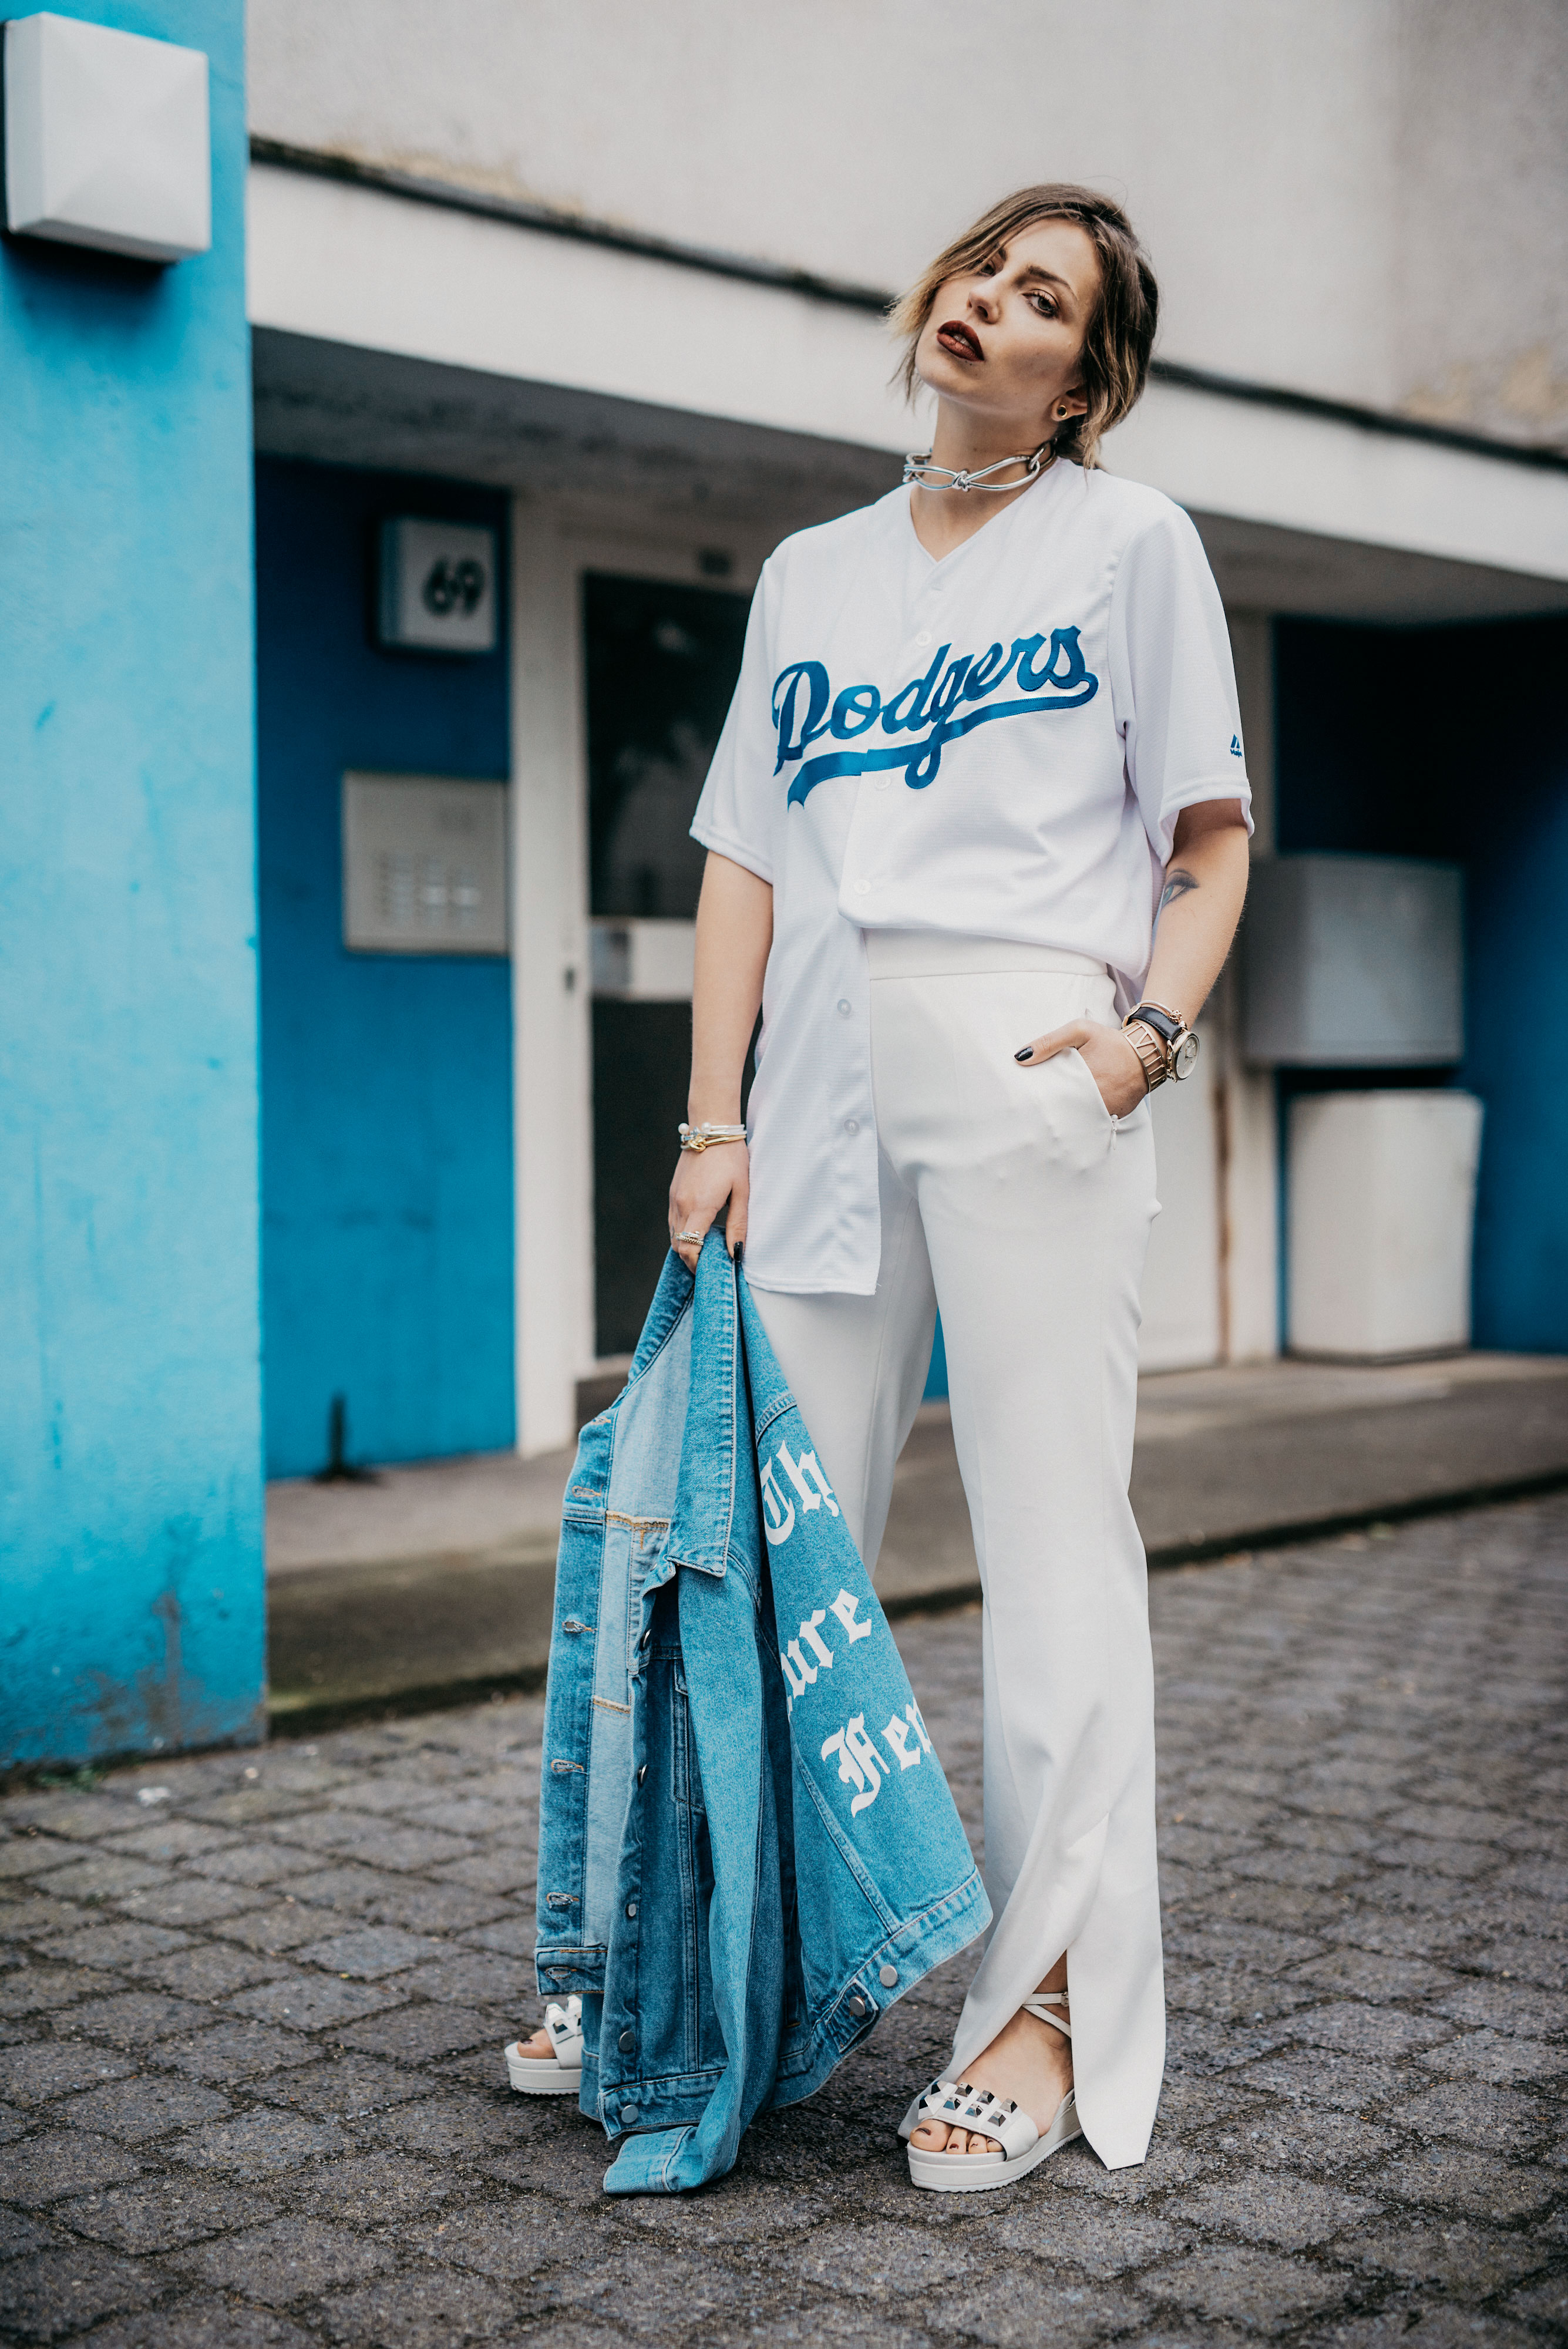 How to wear a baseball shirt | outfit inspiration | style: Berlin, Athleisure, sportswear, white pants, comfy,